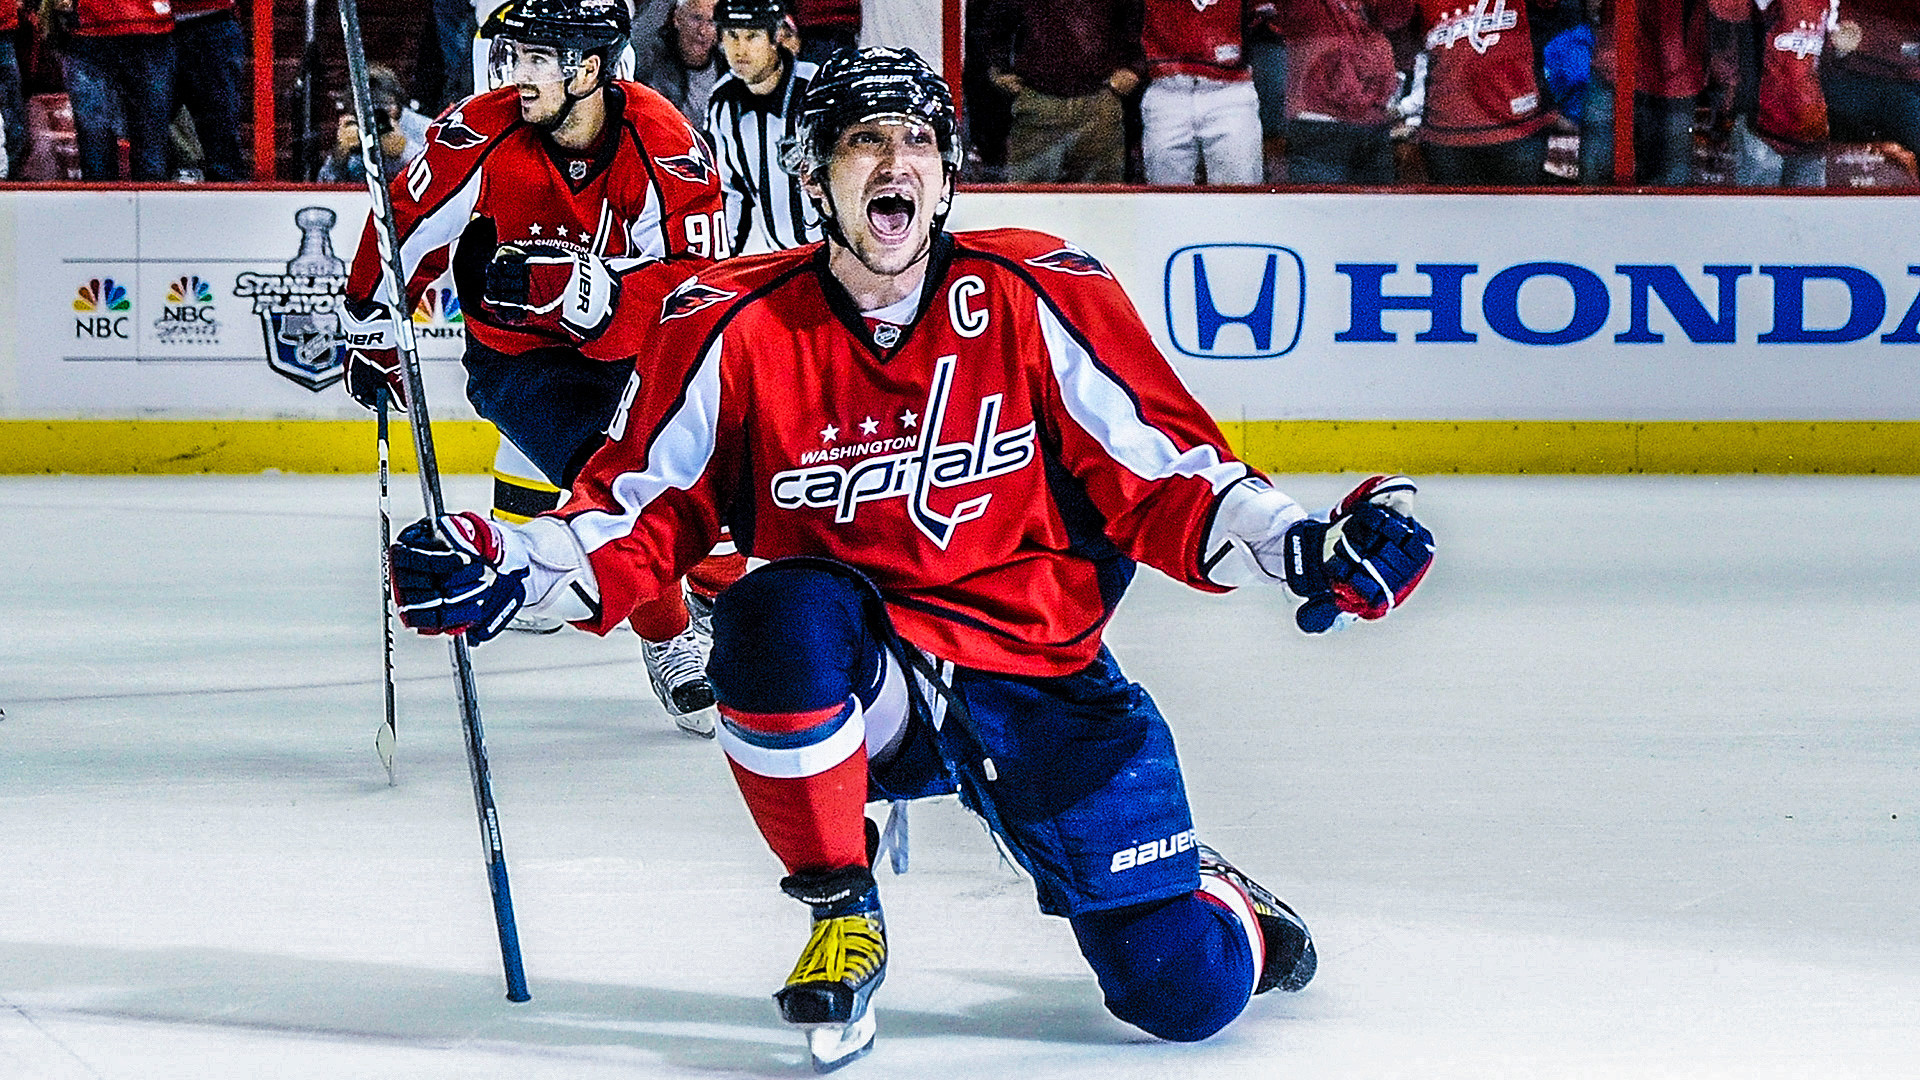 Capitals Alex Ovechkin will not attend 2020 NHL All-Star